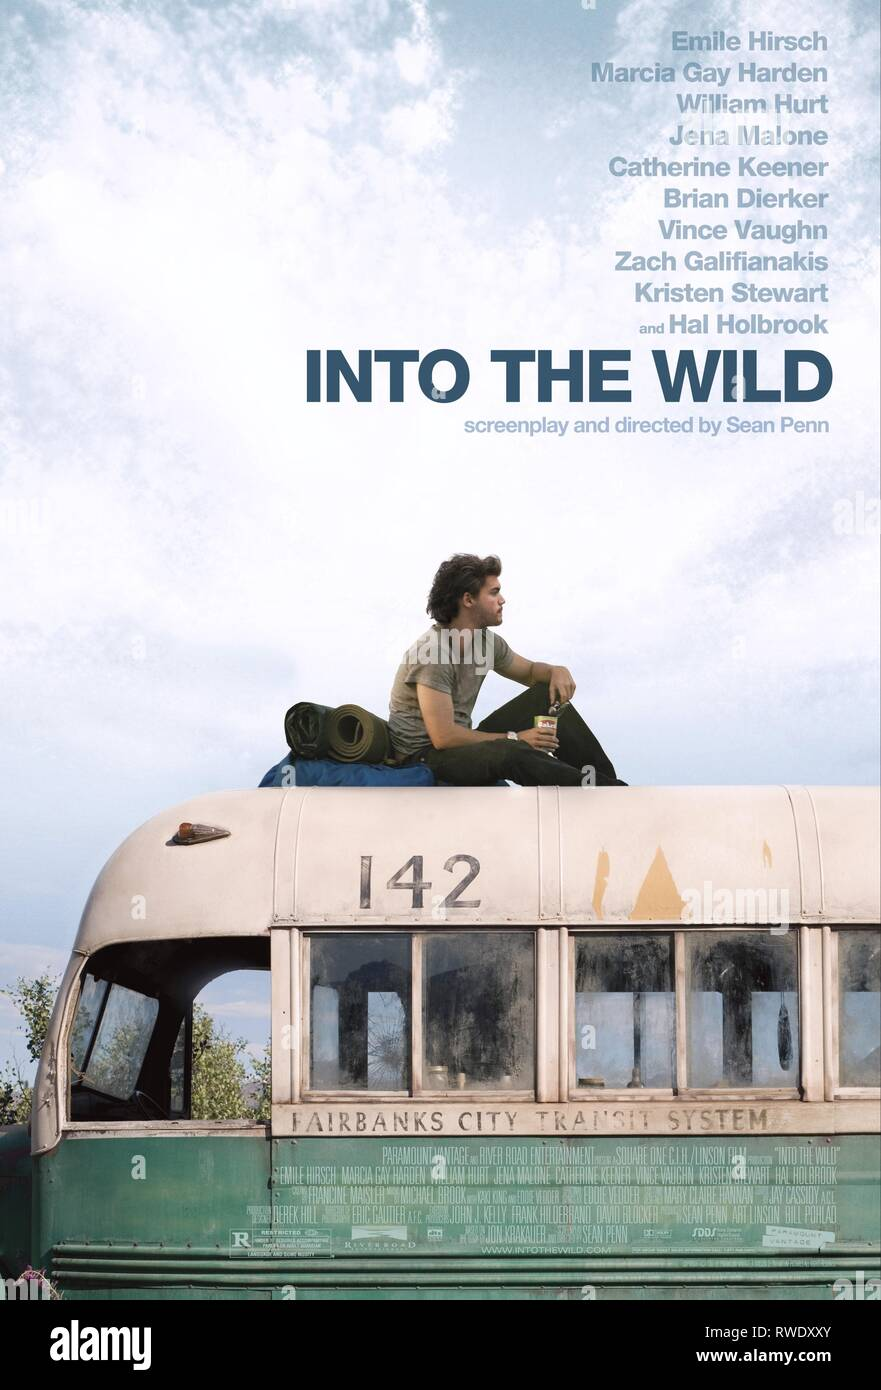 EMILE HIRSCH POSTER, INTO THE WILD, 2007 - Stock Image